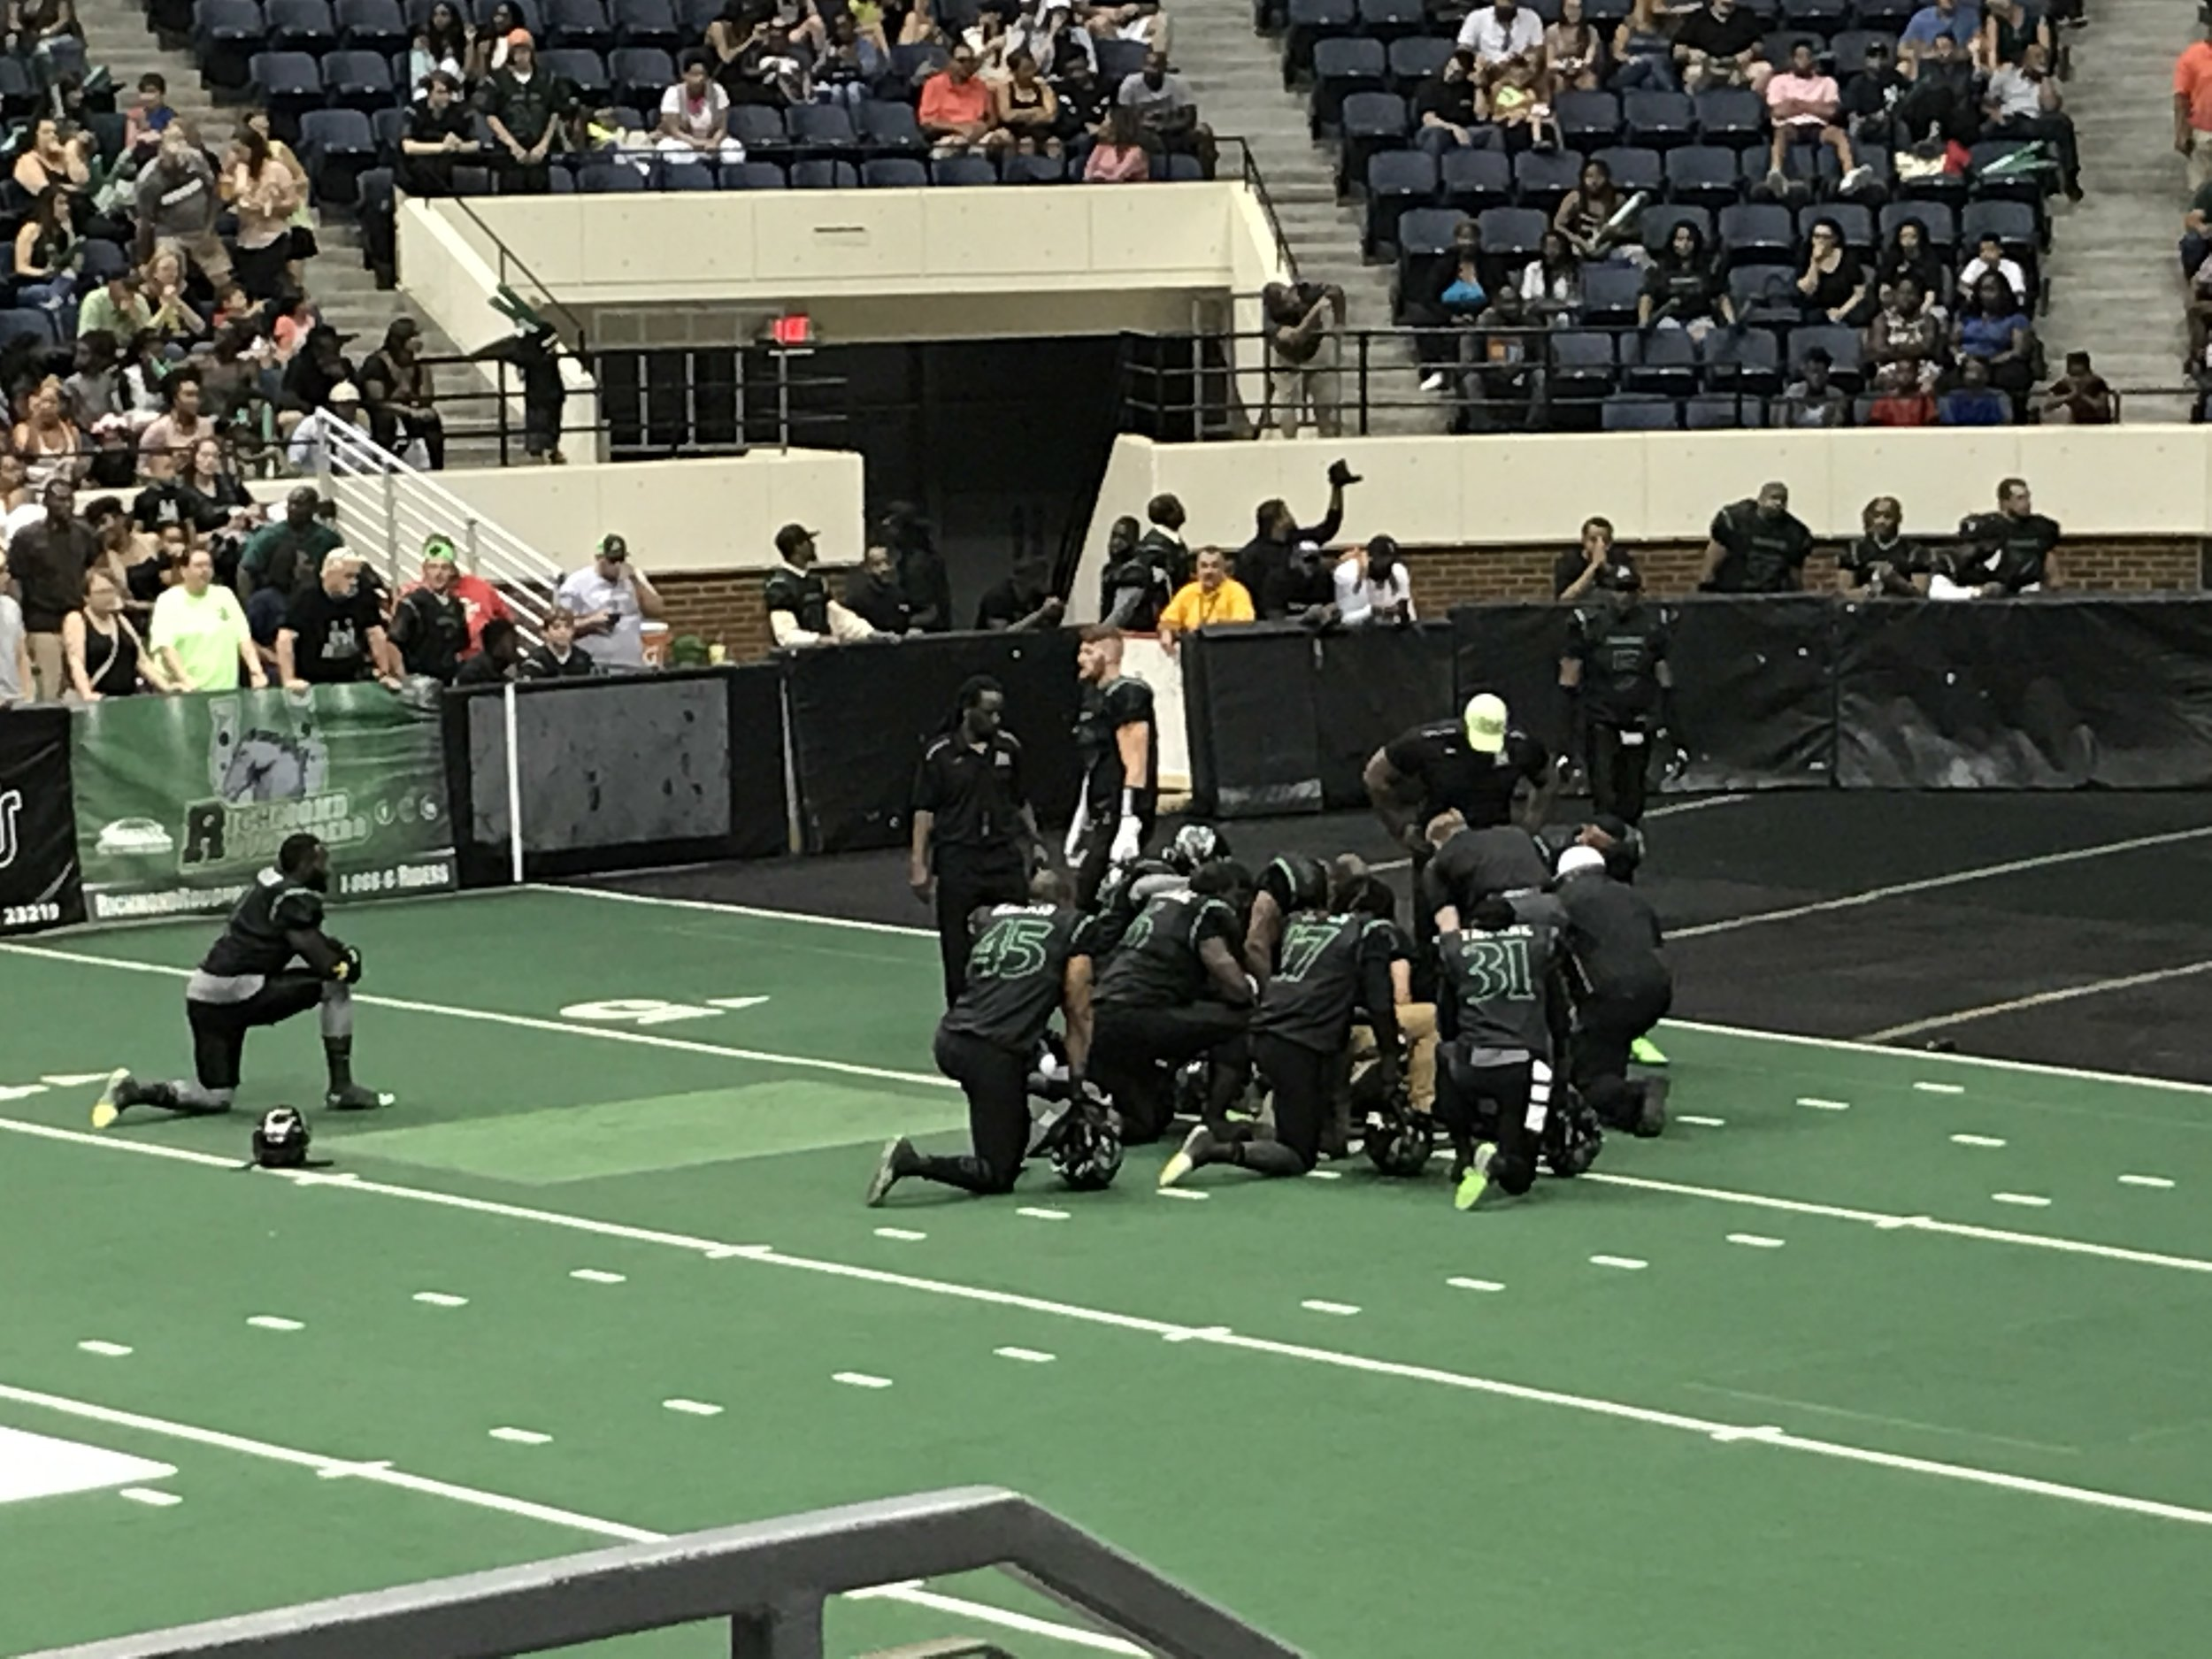 Here, the Rough Riders take a knee in support of their injured and only kicker.  They had to modify their strategy with kickoffs, extra points and filed goals.  Floating helps to repair injuries and to return to play more quickly.